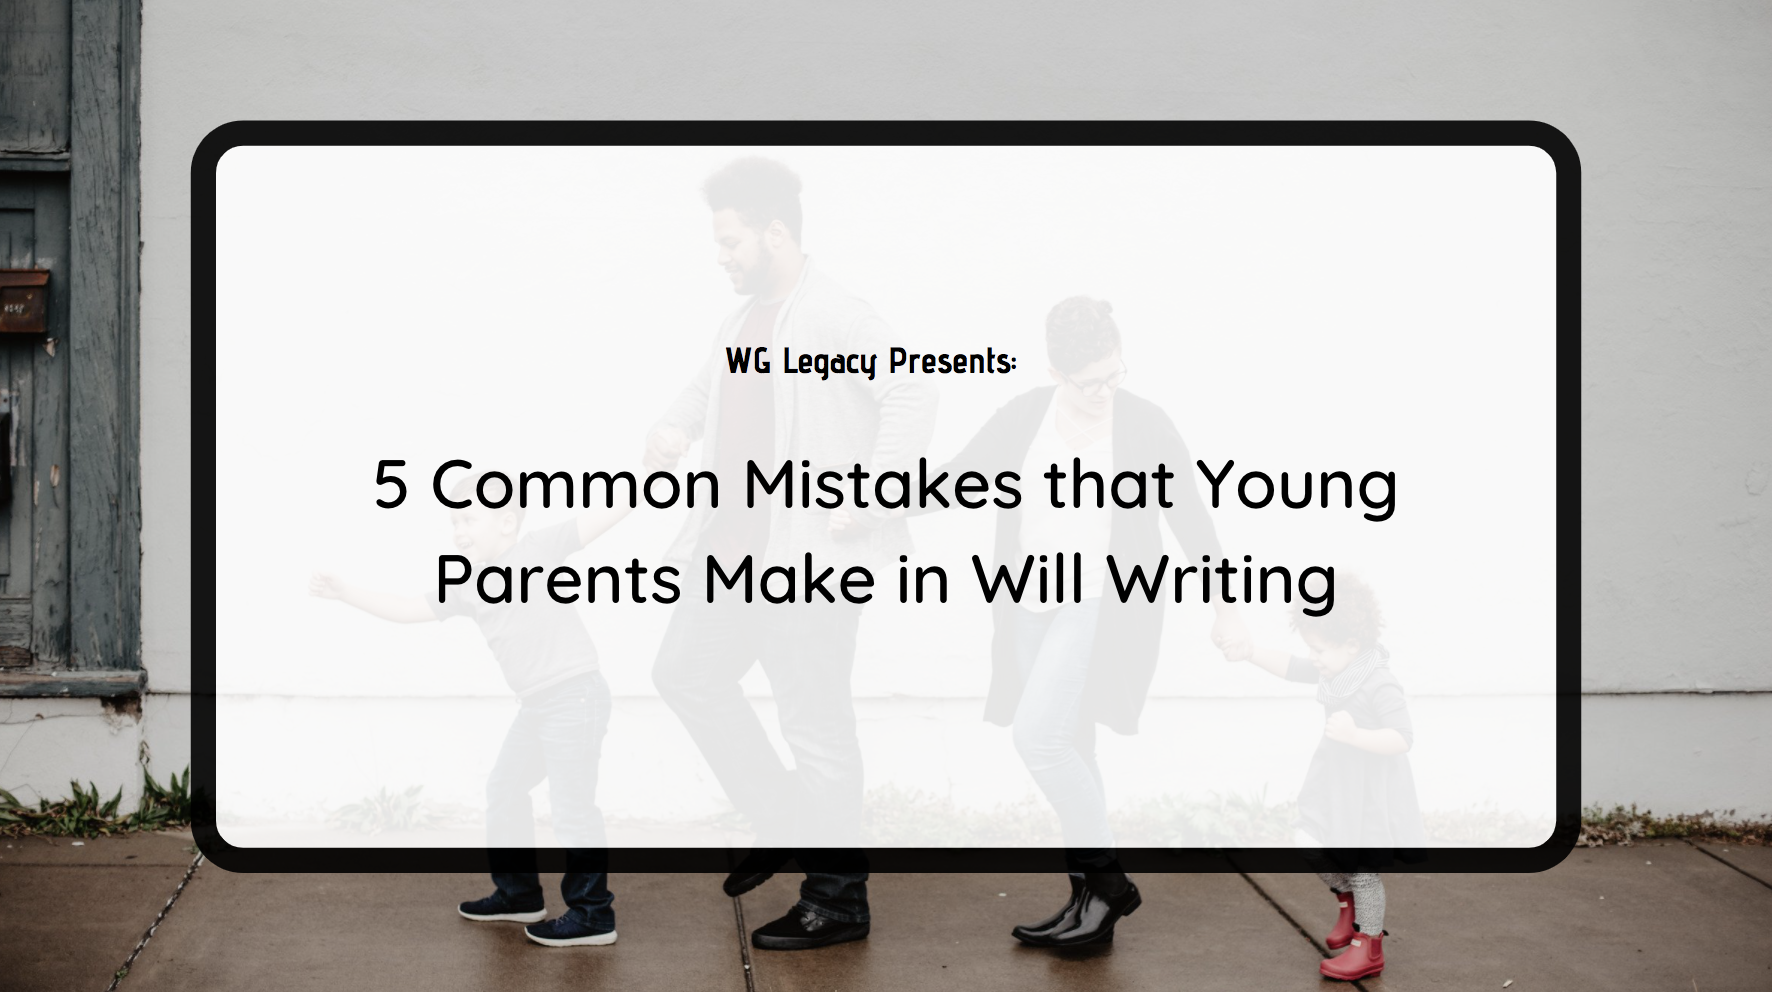 5 Common Mistakes that Young Parents Make in Will Writing